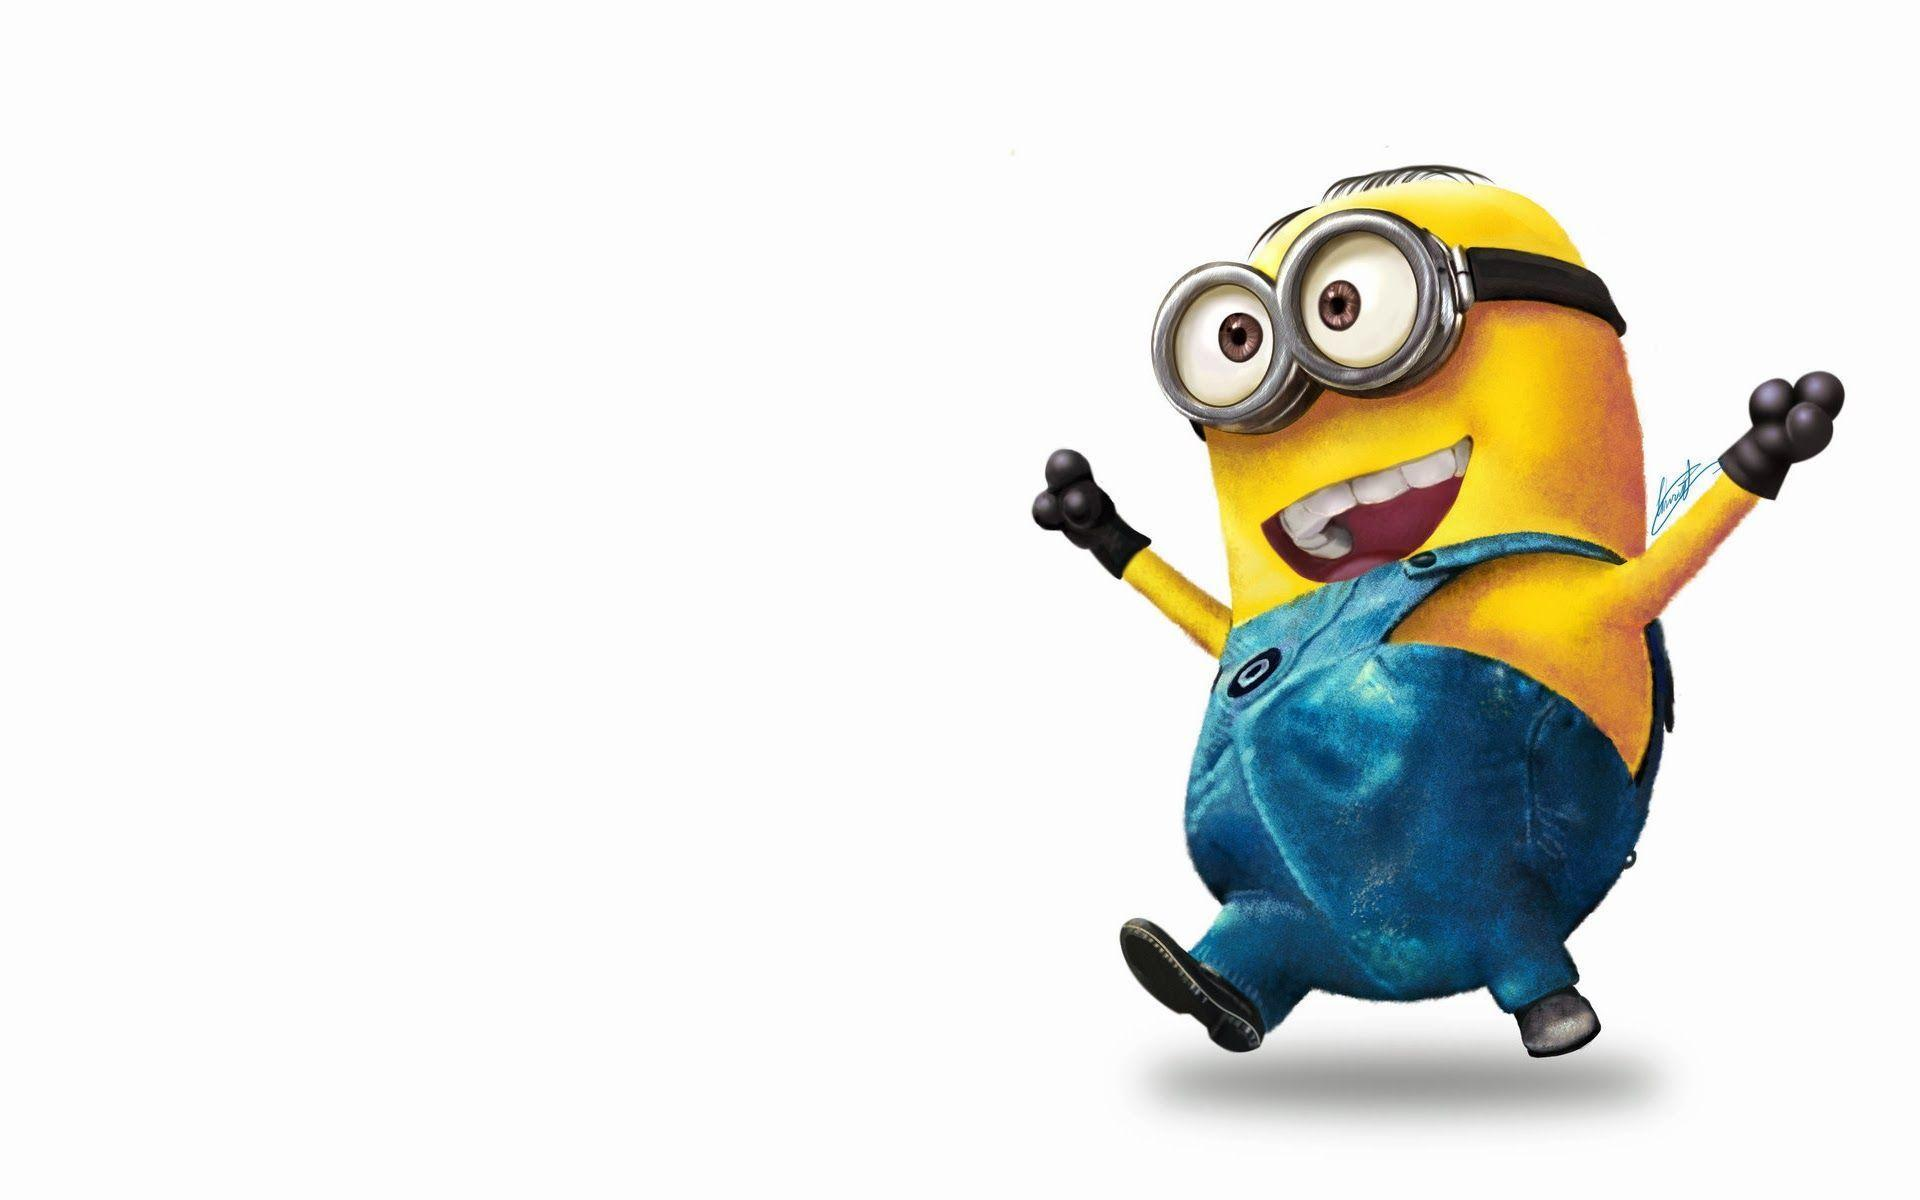 Minion Wallpapers - Full HD wallpaper search - page 2